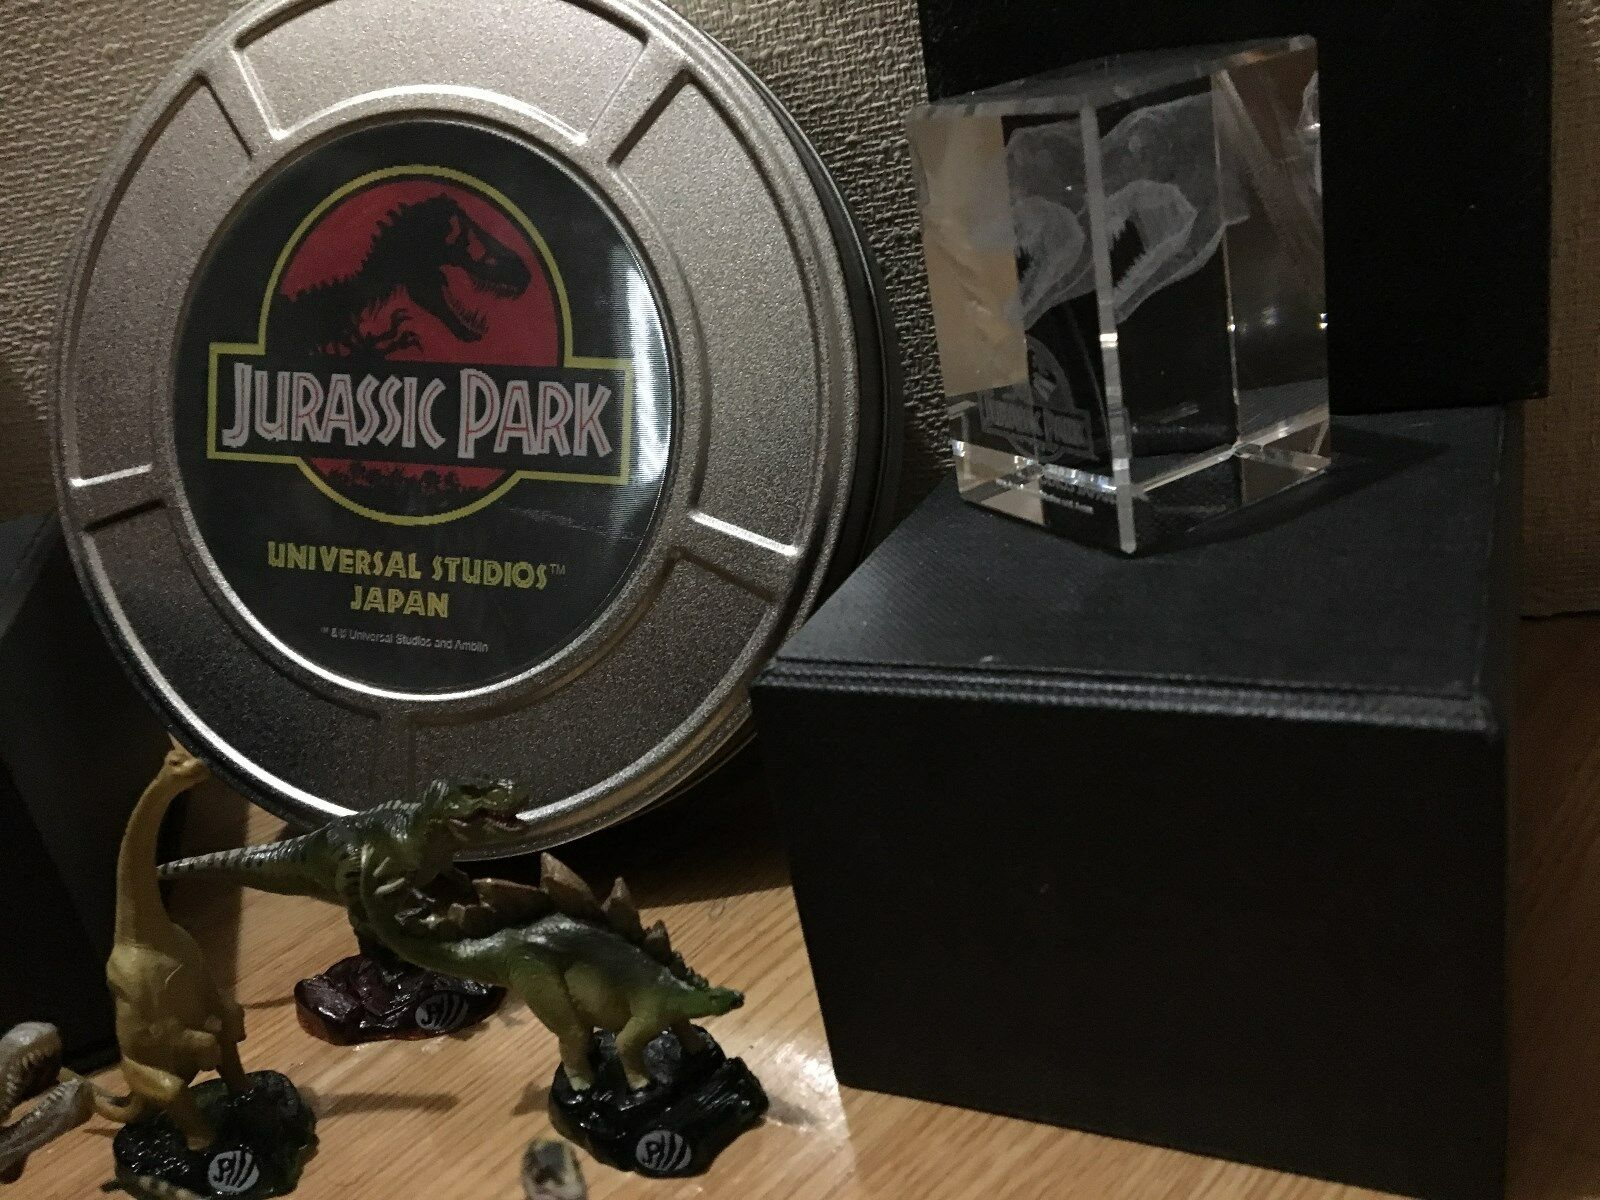 Jurassic world lost world Jurassic park Decorative Box duplicate key paperweight